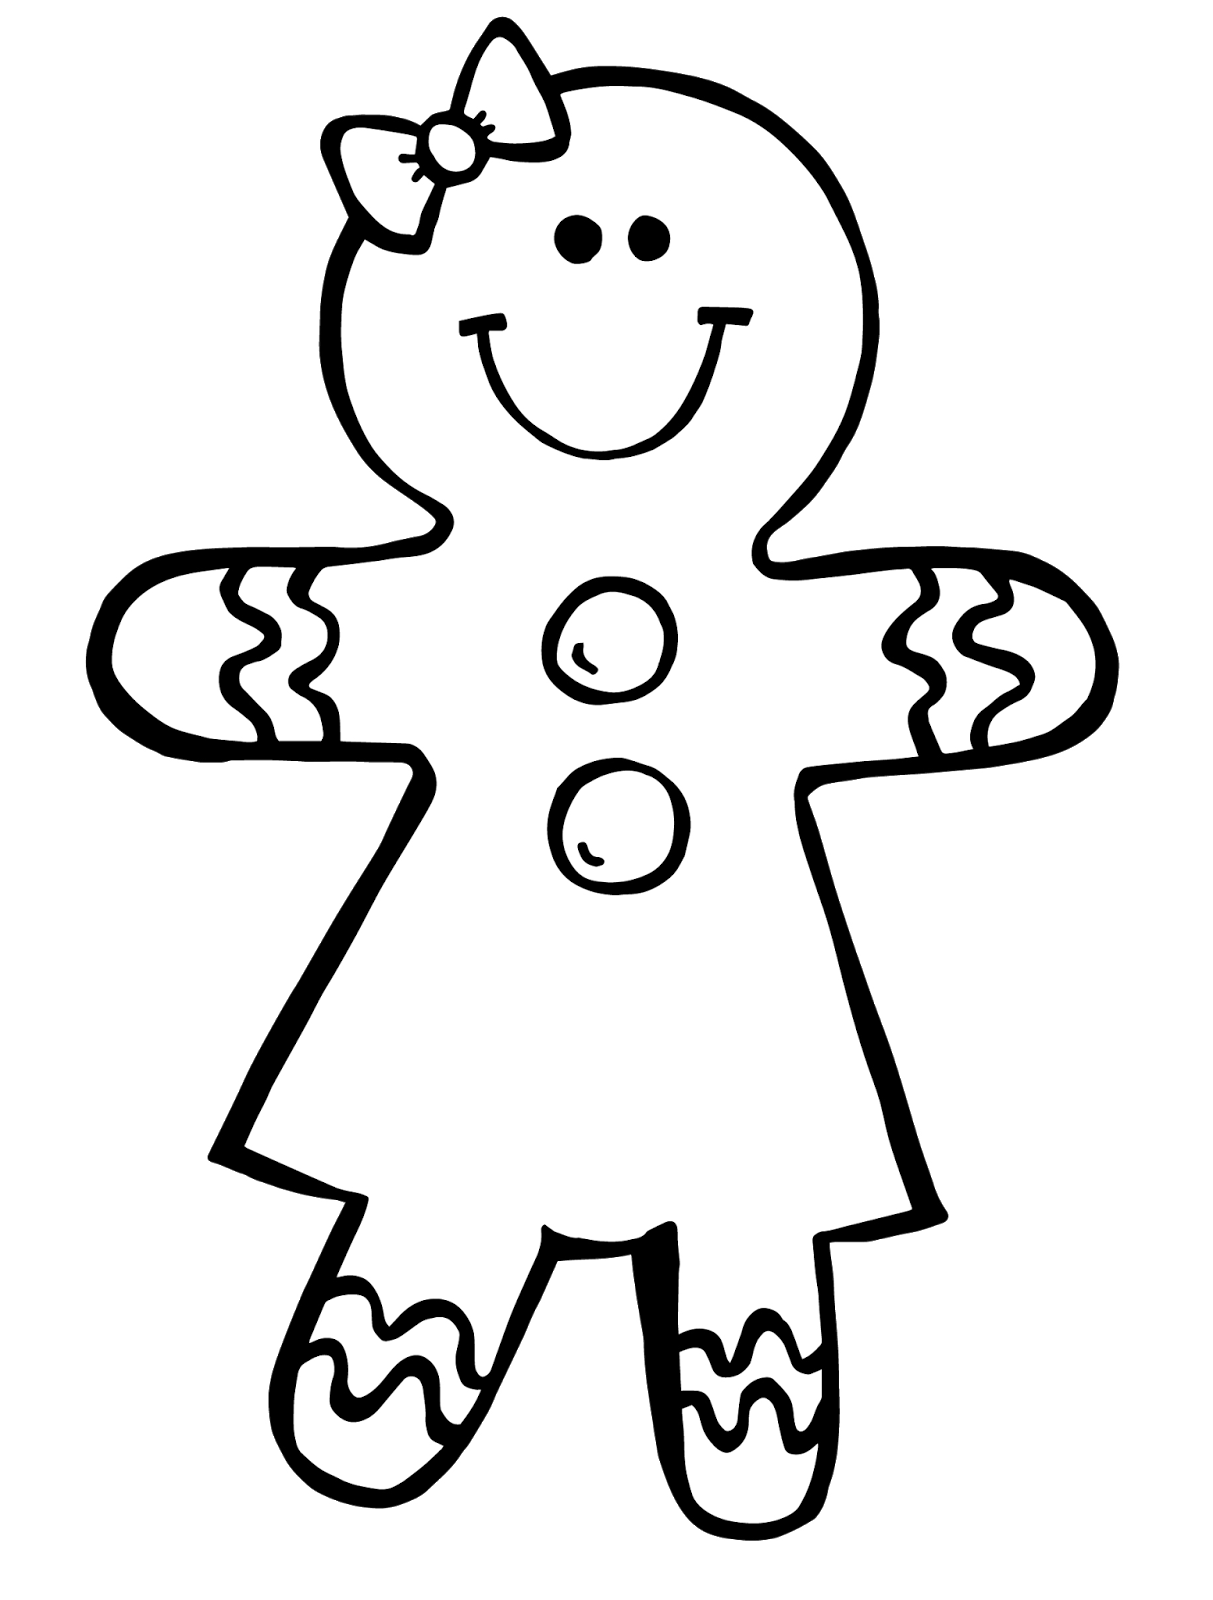 Ginger bread clipart black and white free jpg transparent stock Free Gingerbread House Clipart, Download Free Clip Art, Free Clip ... jpg transparent stock